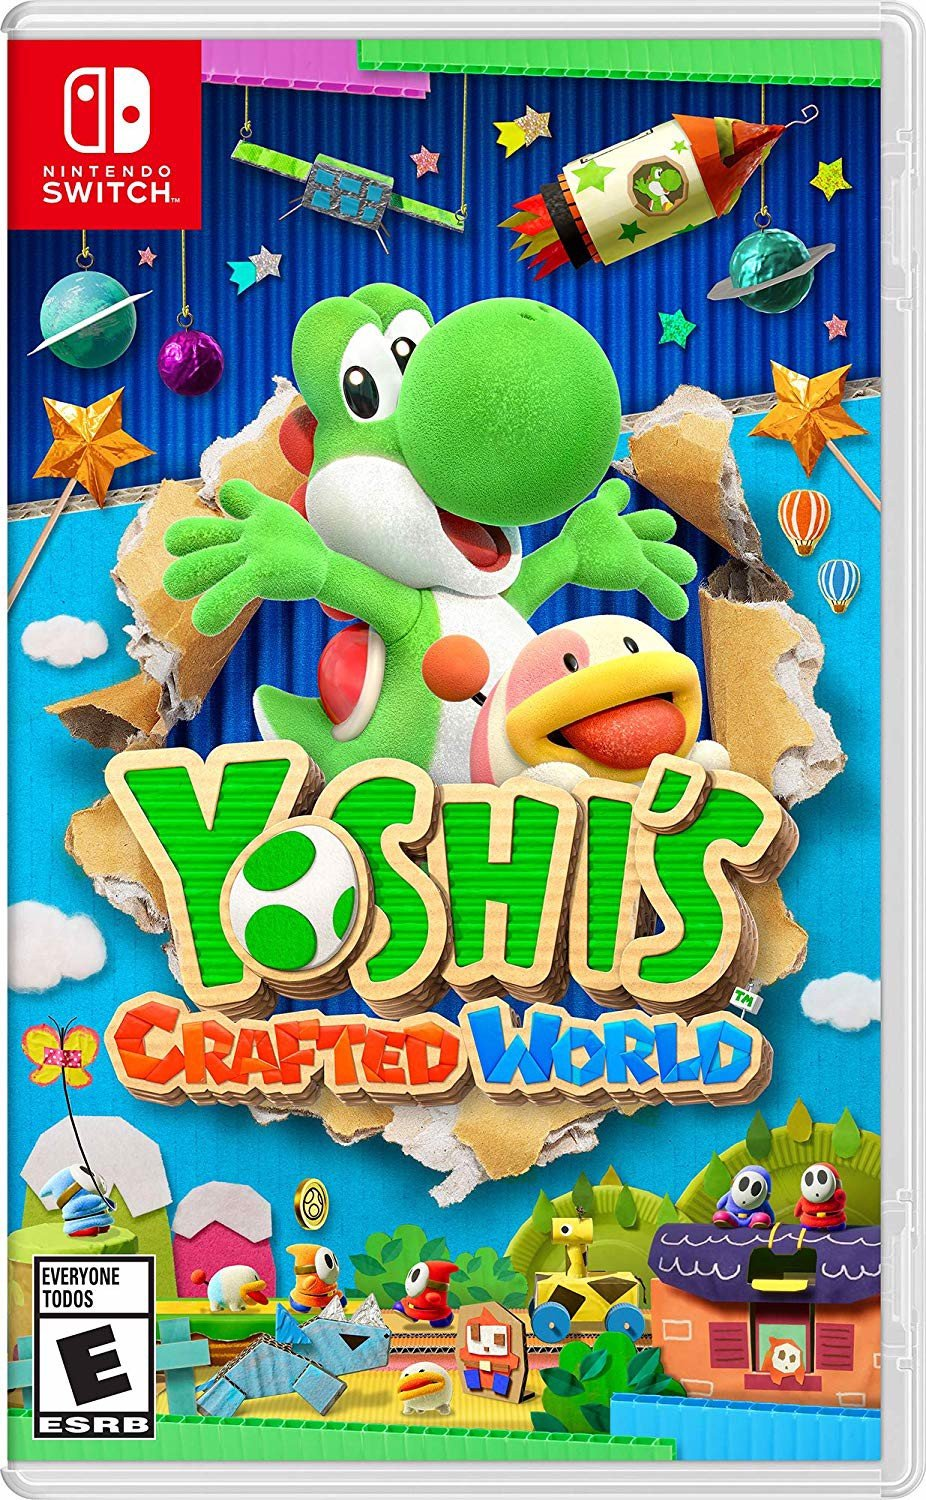 167 - Yoshi's Crafted World